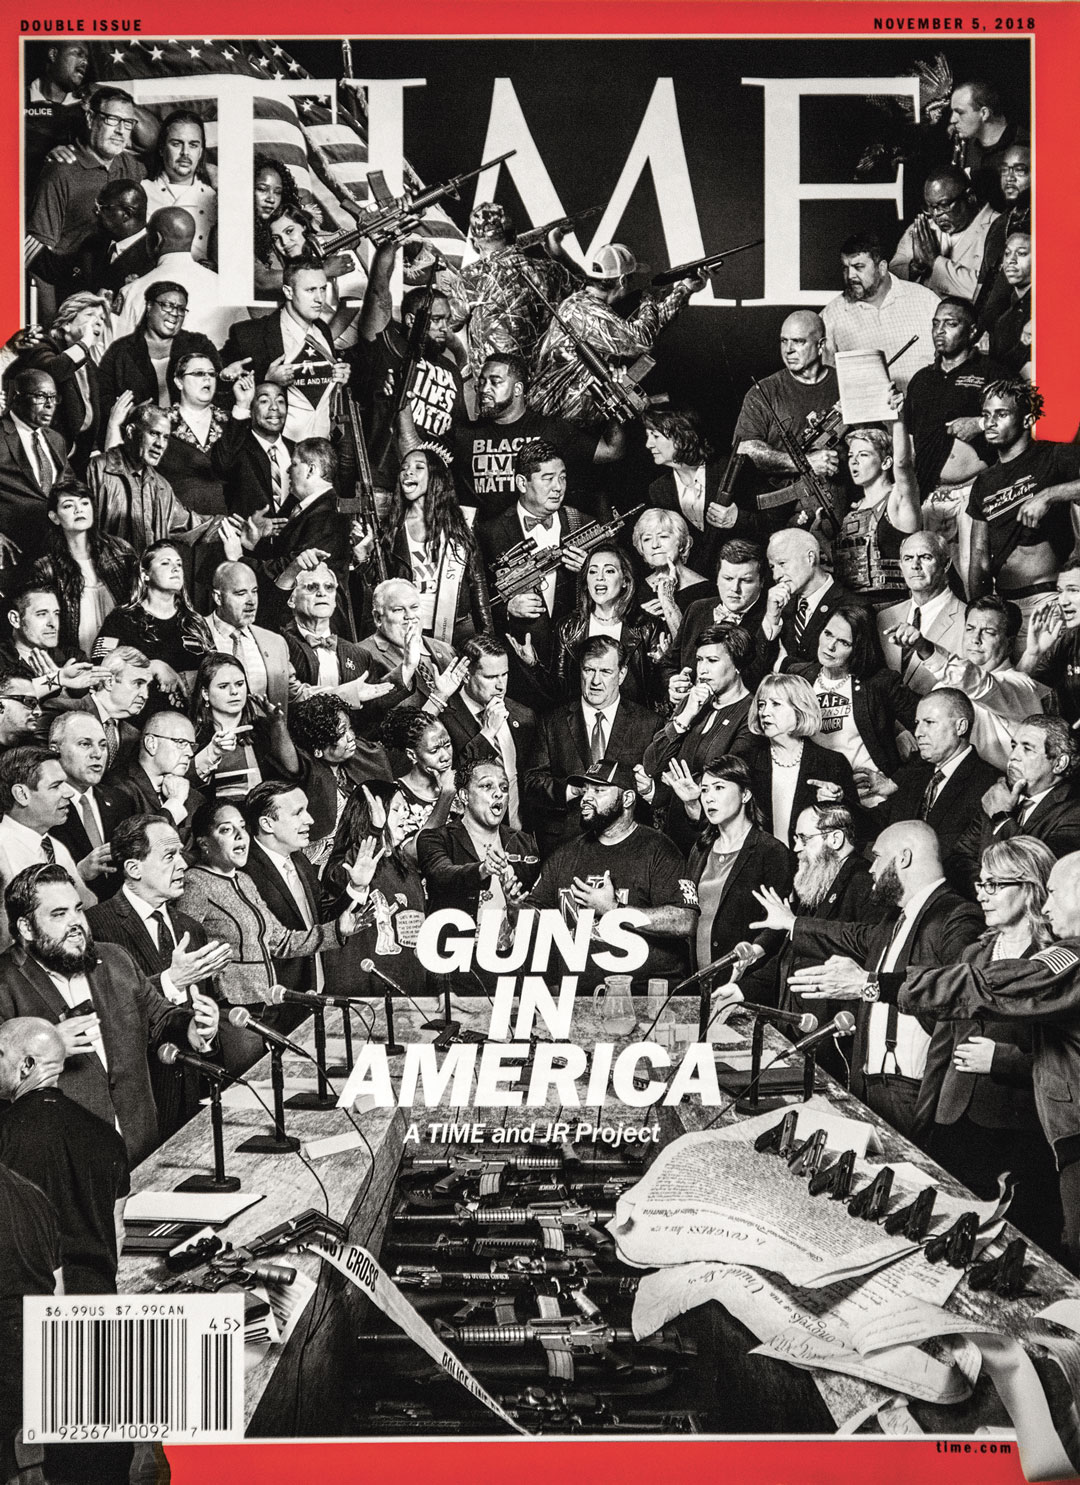 'Guns in America' cover, Time magazine, 5 November 2018